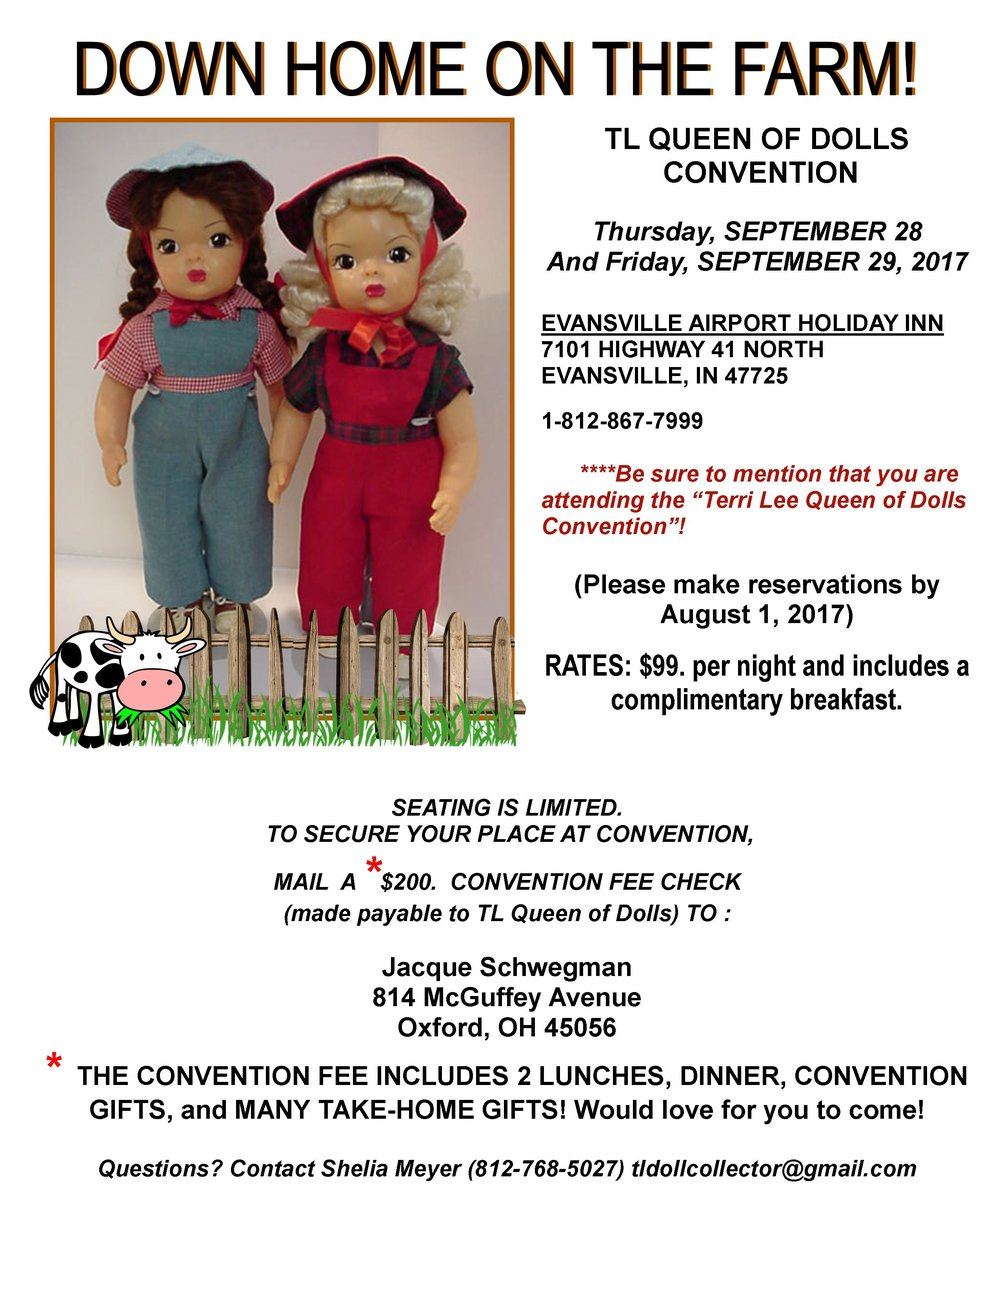 2017 convention flyer.JPG